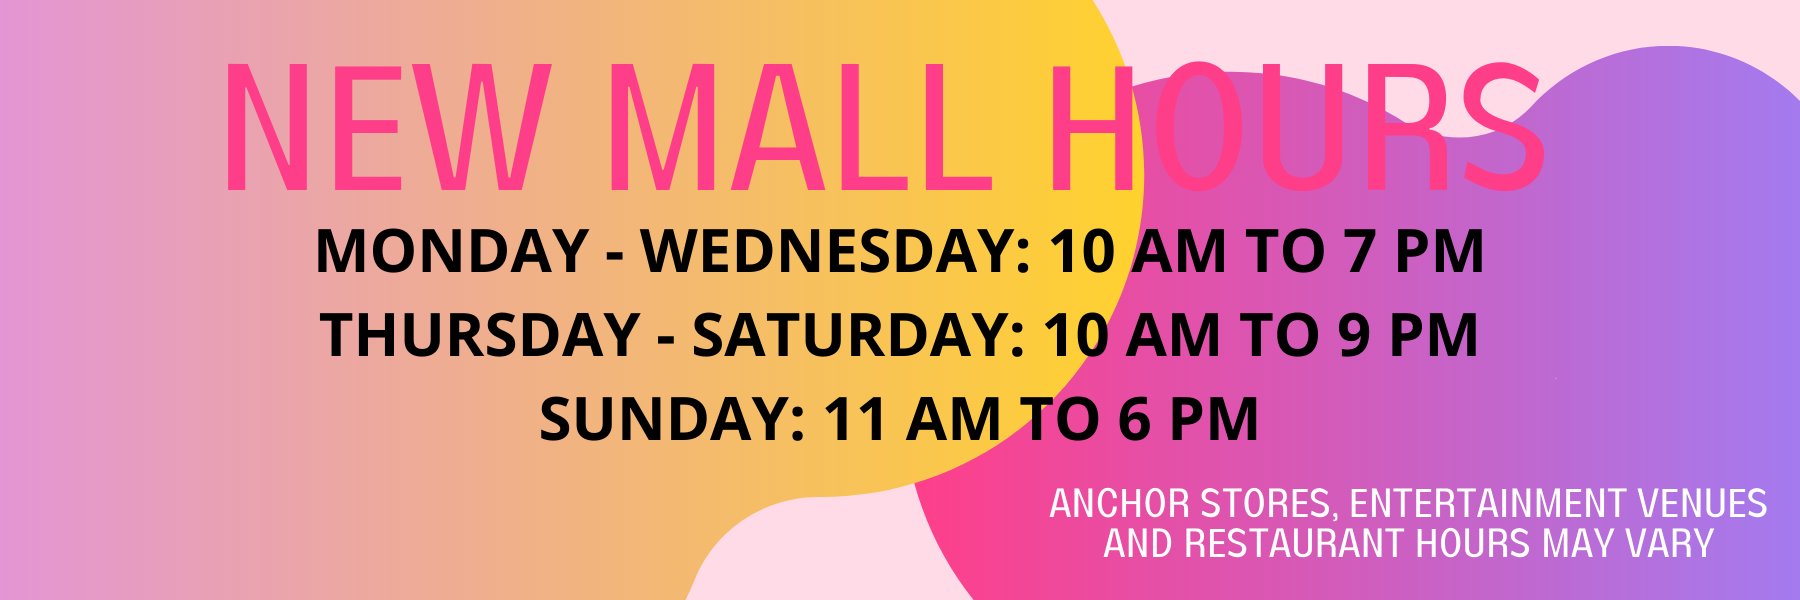 NEW MALL HOURS 2